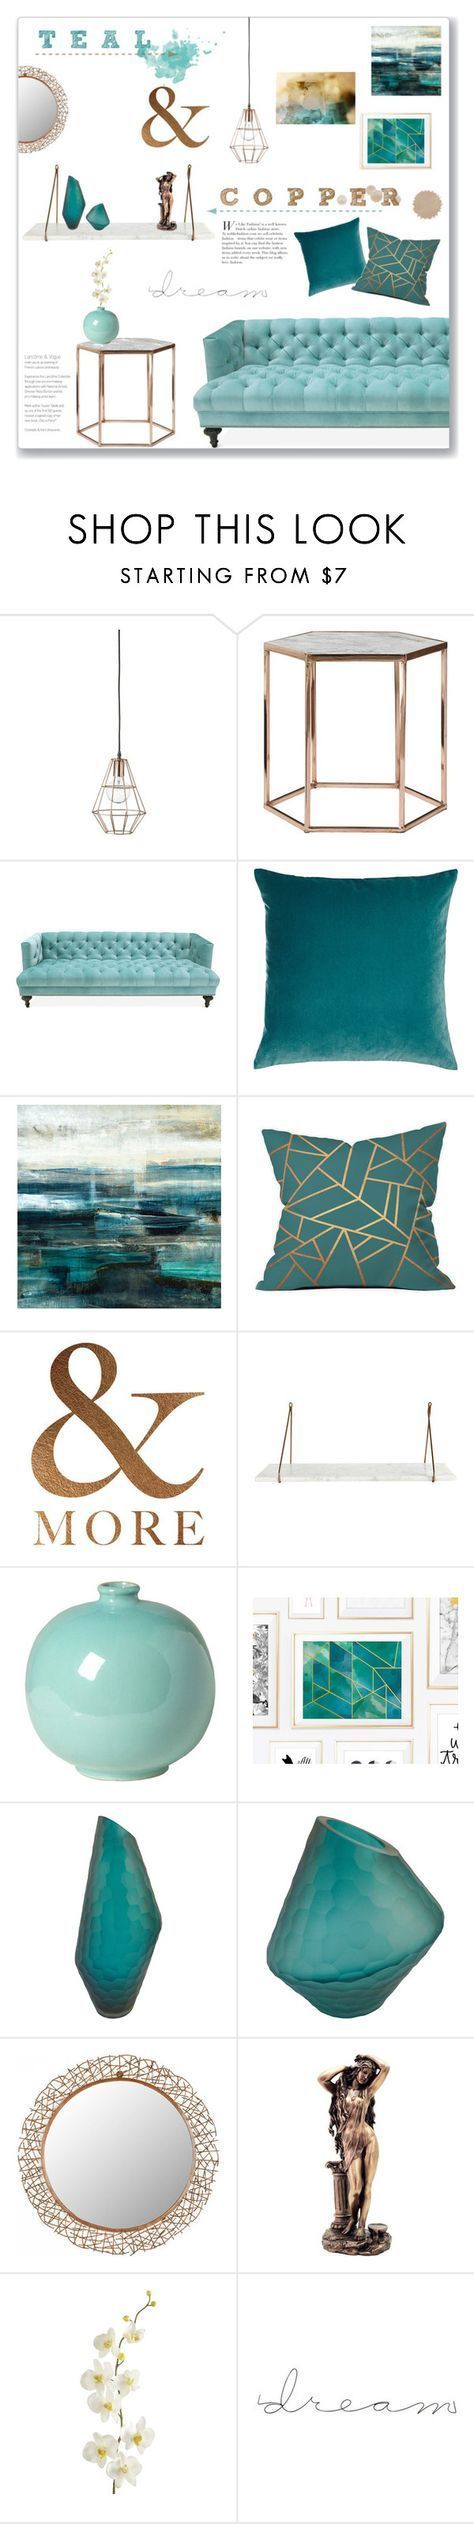 Want to add turquoise to your home's decor? Here are 12 fabulous turquoise room ideas that offer inspiration for bedrooms, living rooms, and other room.